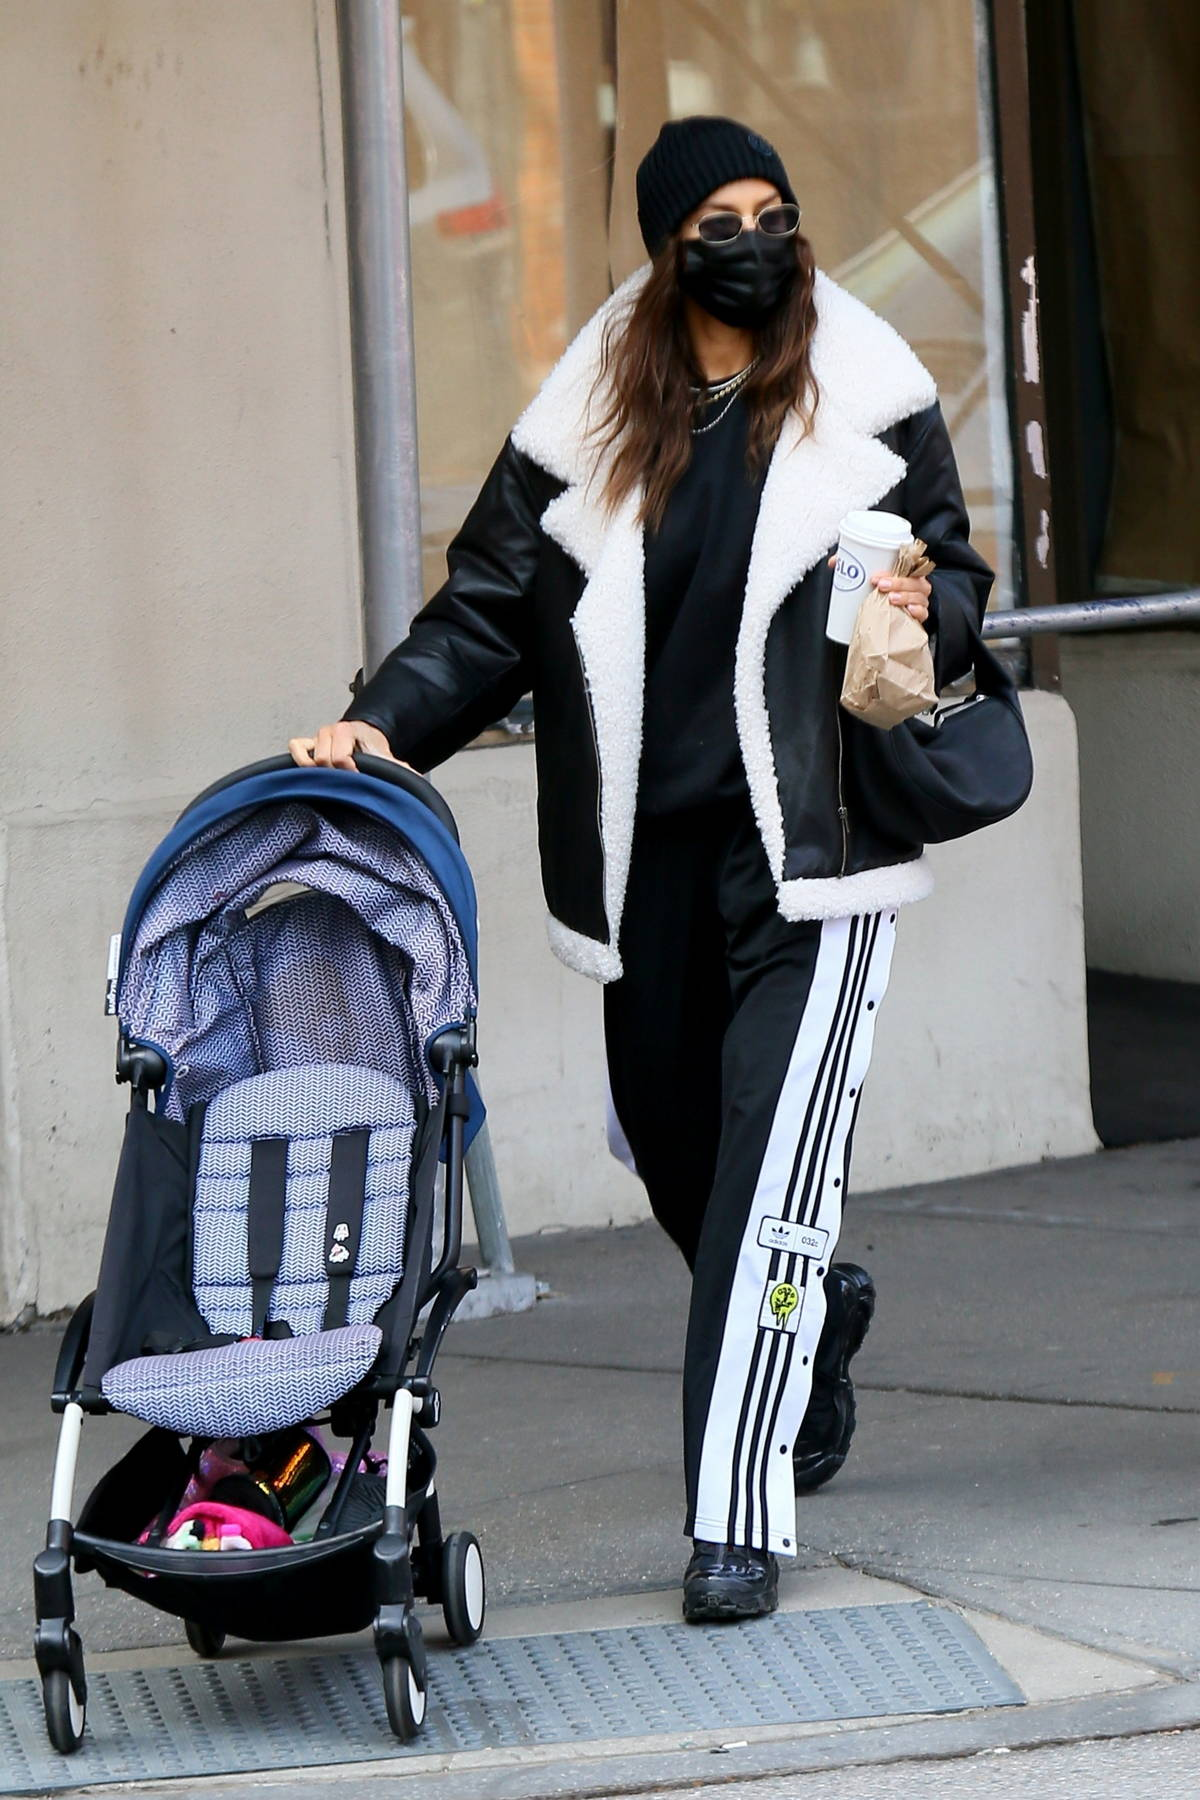 Irina Shayk looks stylish in monochrome while out to pick up her daughter from school in New York City